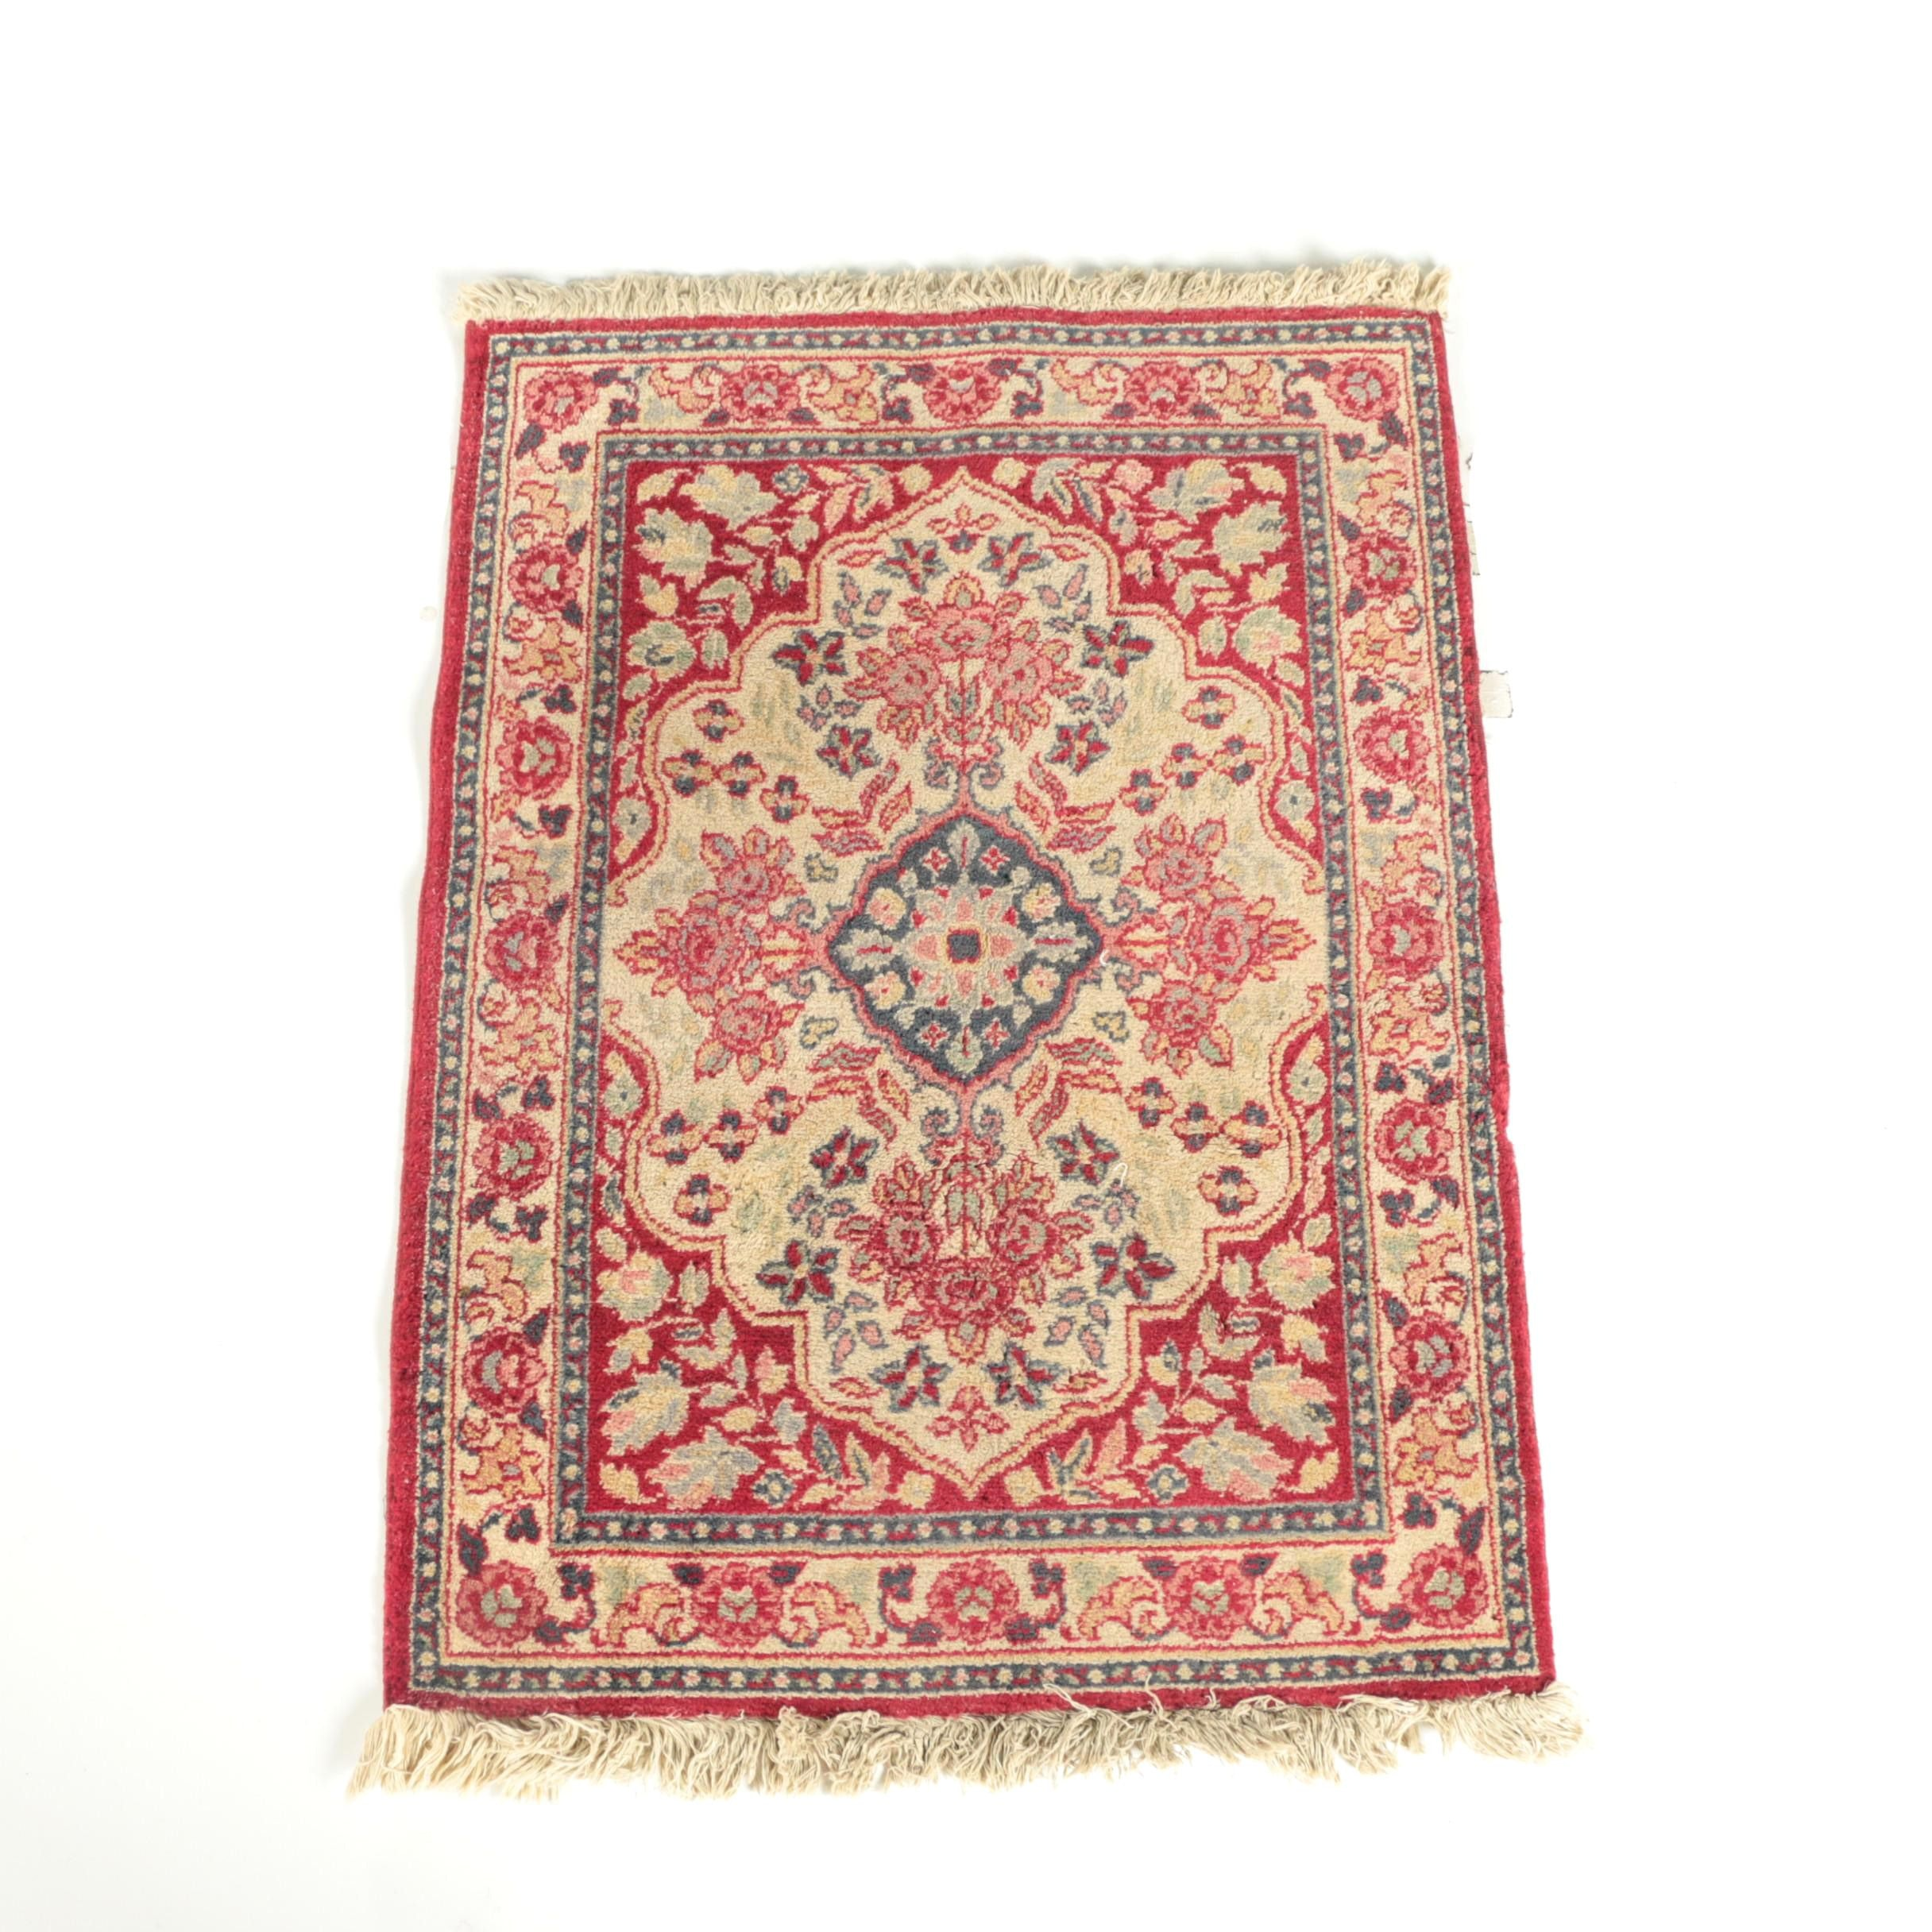 Power Loomed Indo-Persian Wool Accent Rug